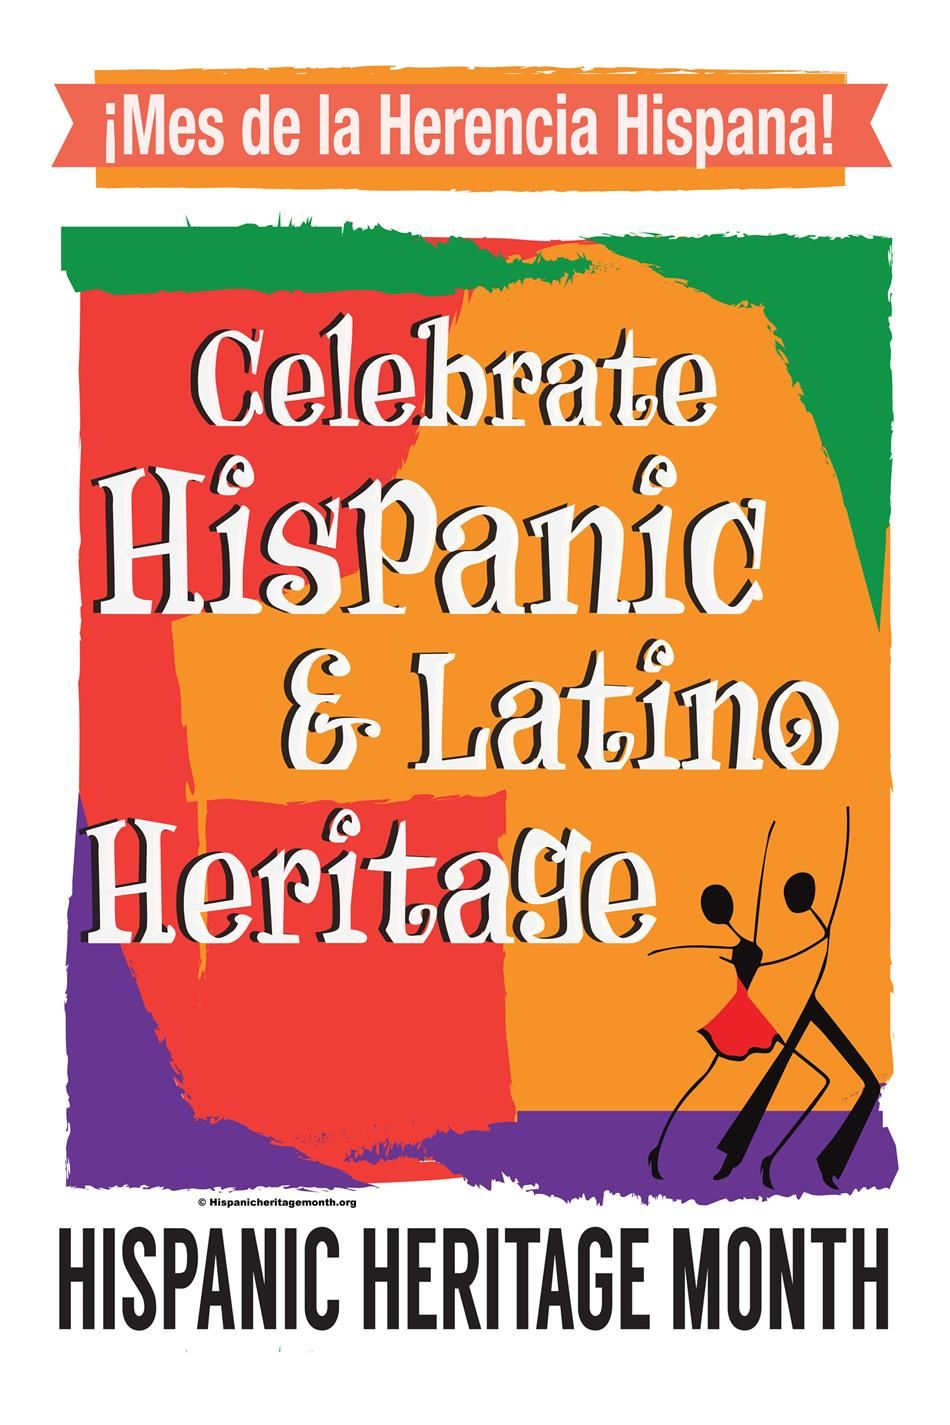 Hispanic Heritage Month Sept.15-Oct. 15th